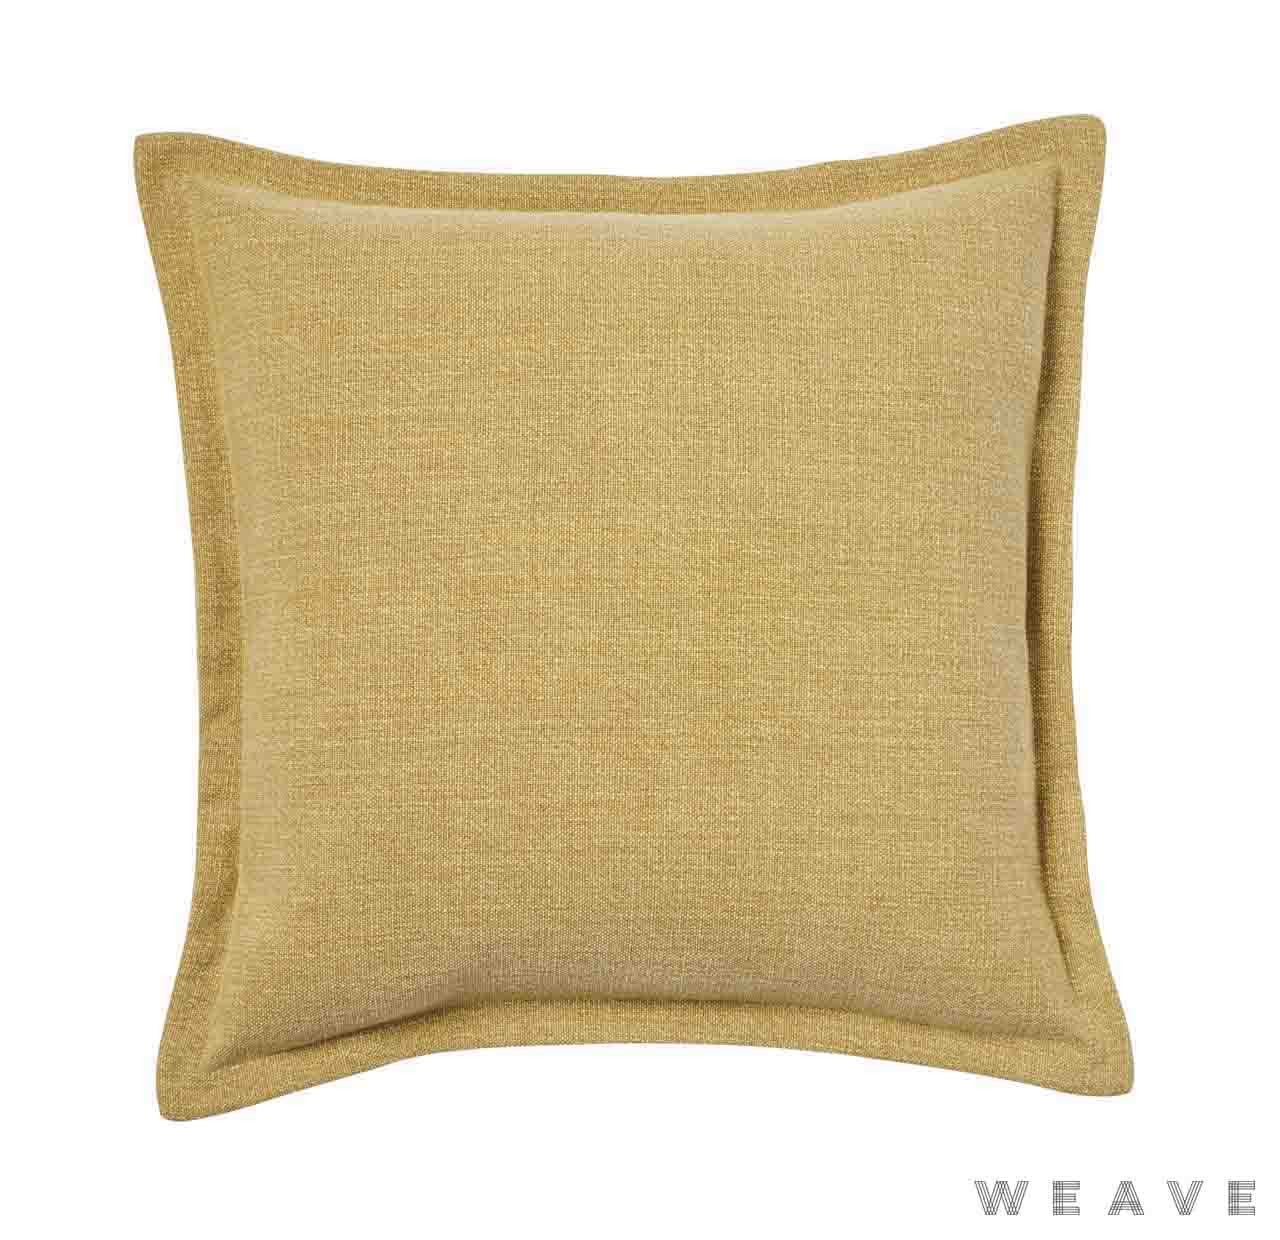 Weave - Austin Cushion - Mustard (Pack of 2)  | Cusion Fabric - Gold,  Yellow, Plain, Weave